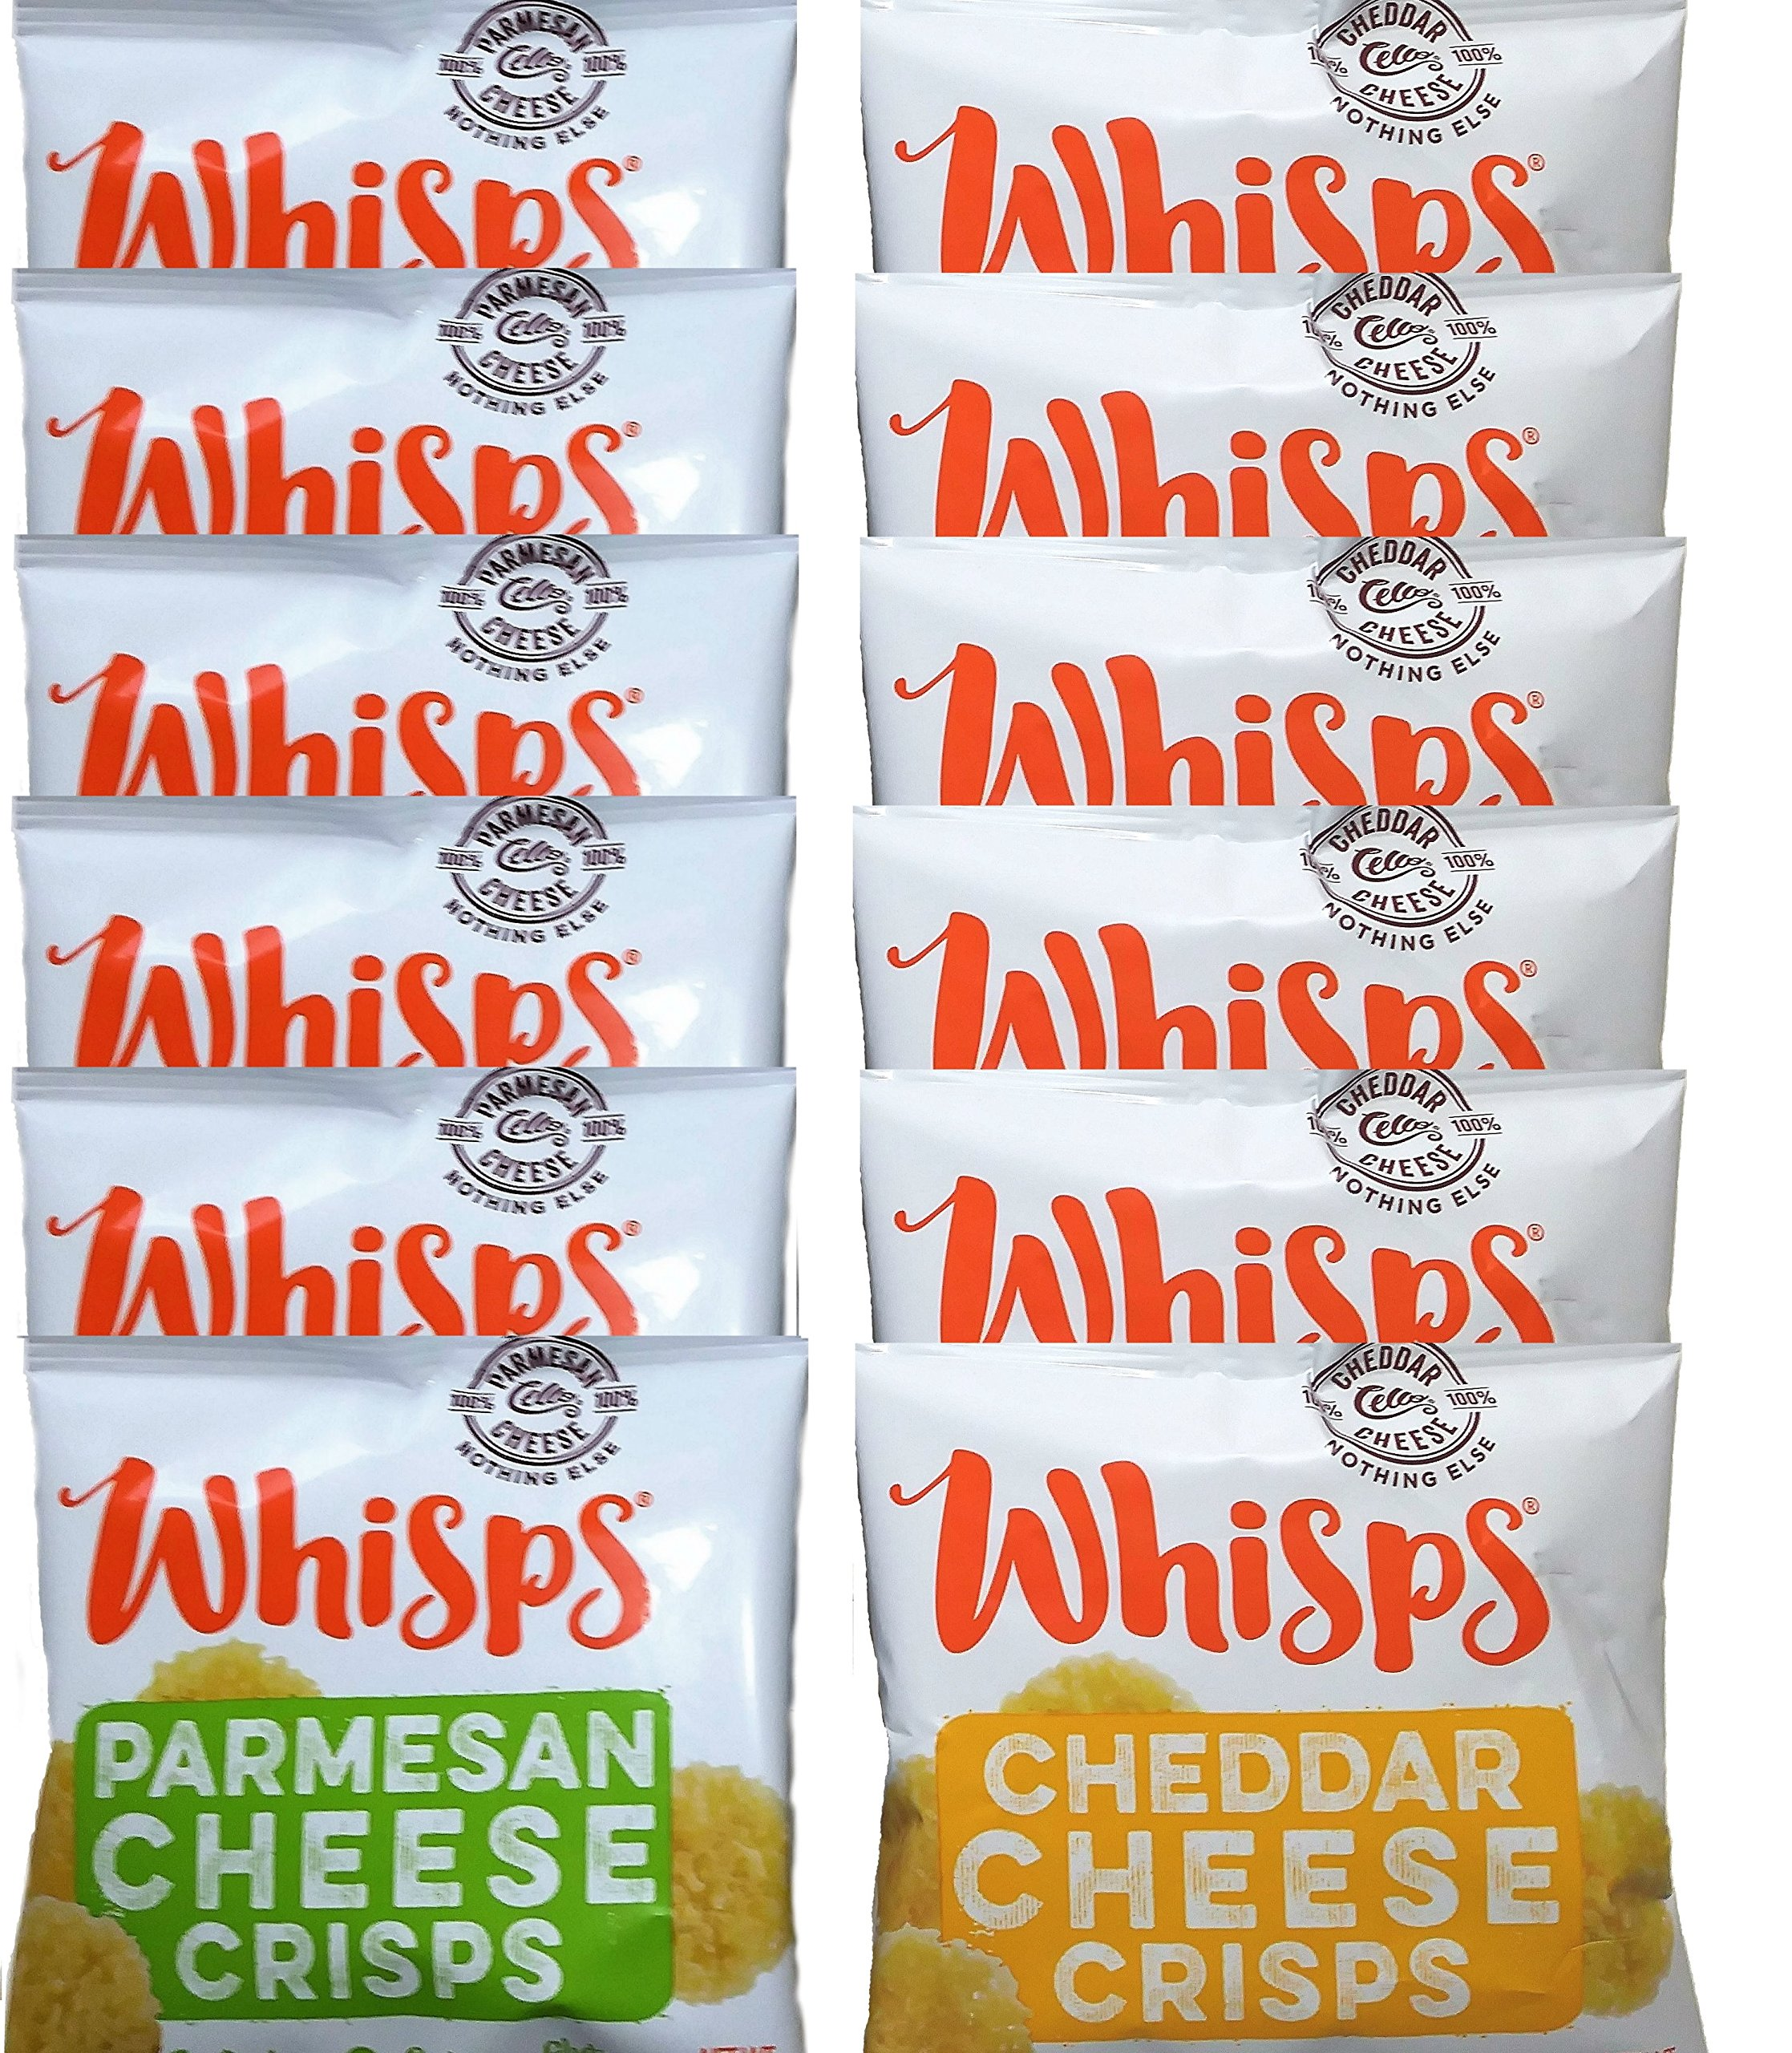 Whisps Cheese Crisps, Single Serve Bags (.63oz), 12 Pk Assortment (6 Parmesan & 6 Cheddar) by Cello Whisps